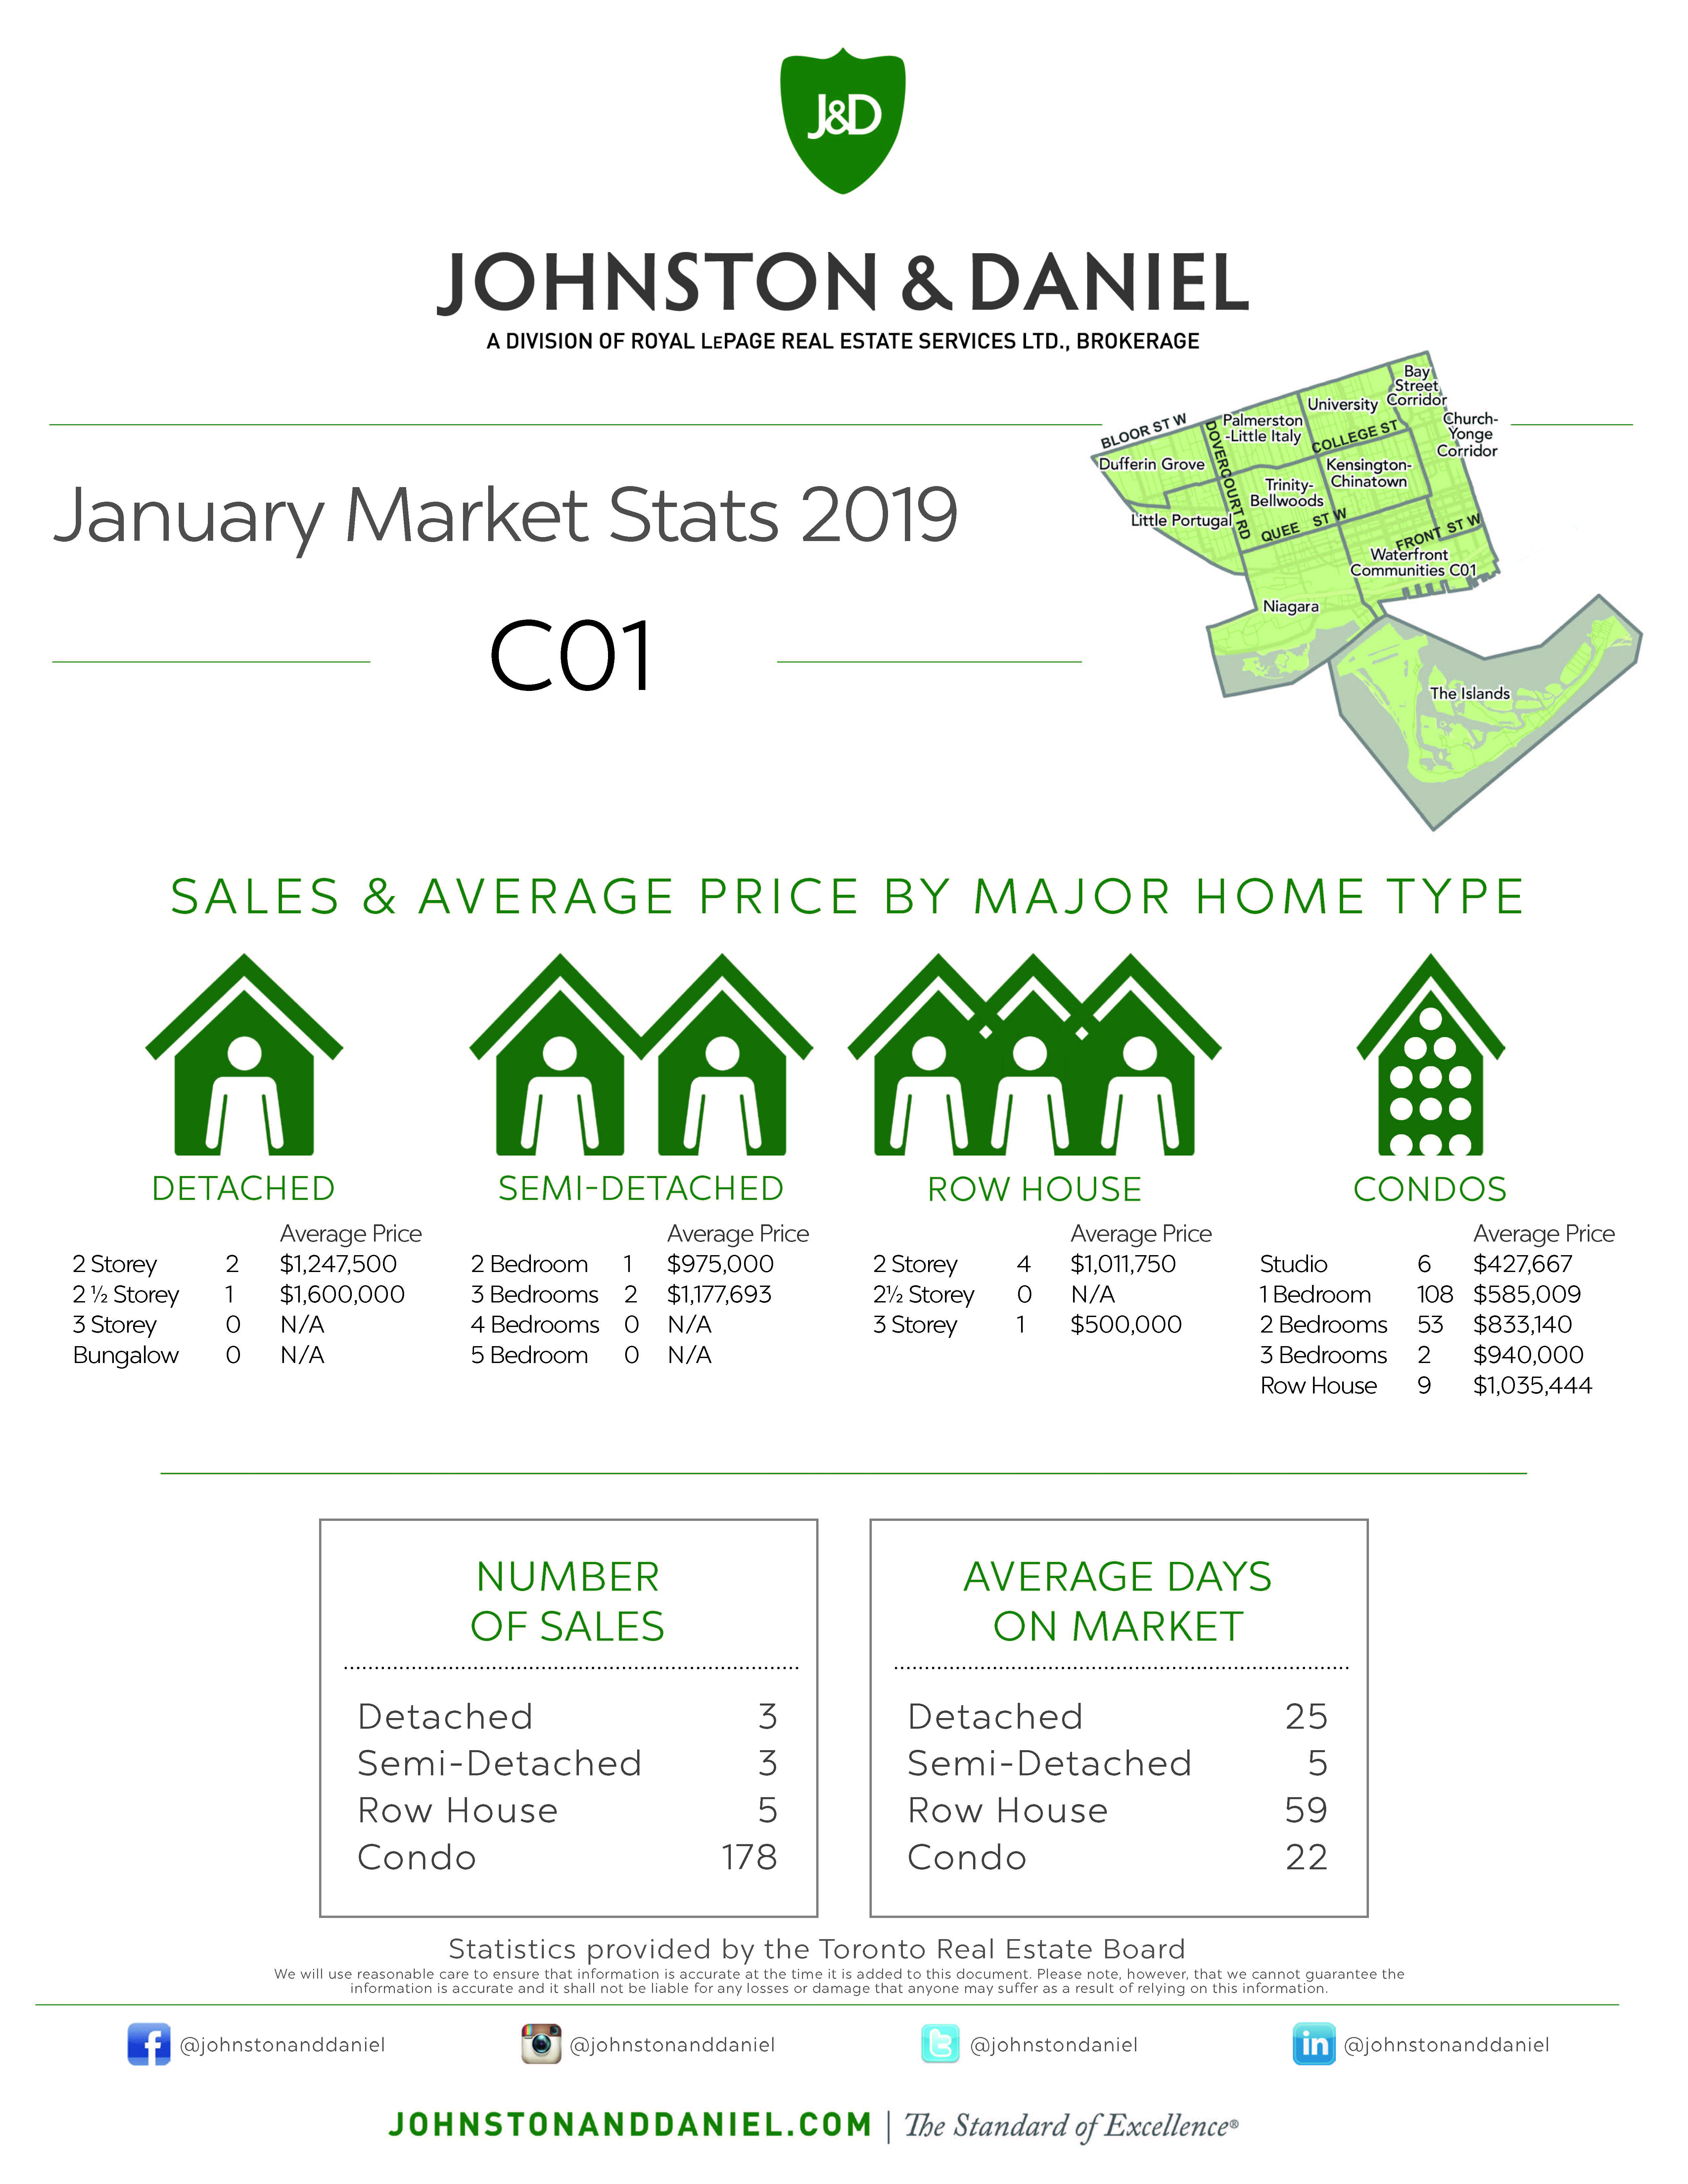 Toronto Real Estate Sales Statistics January 2019 for Area C01